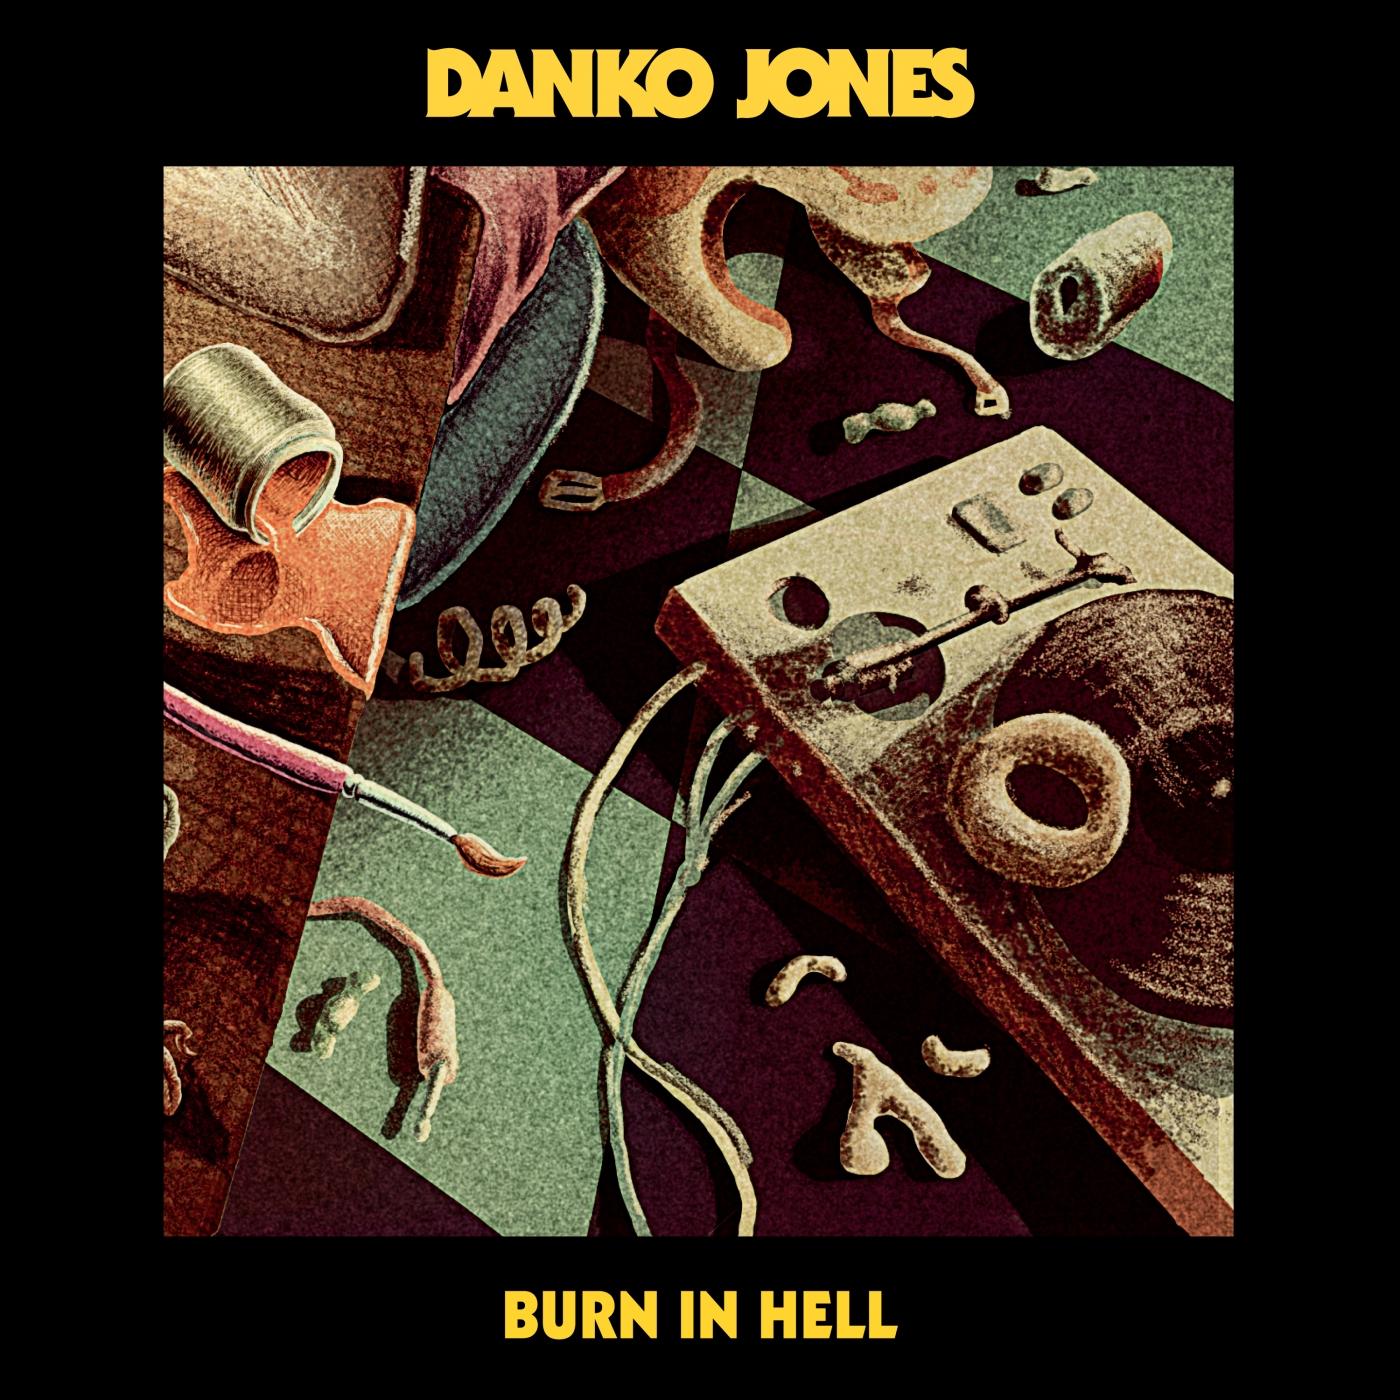 Danko Jones - Burn in Hell